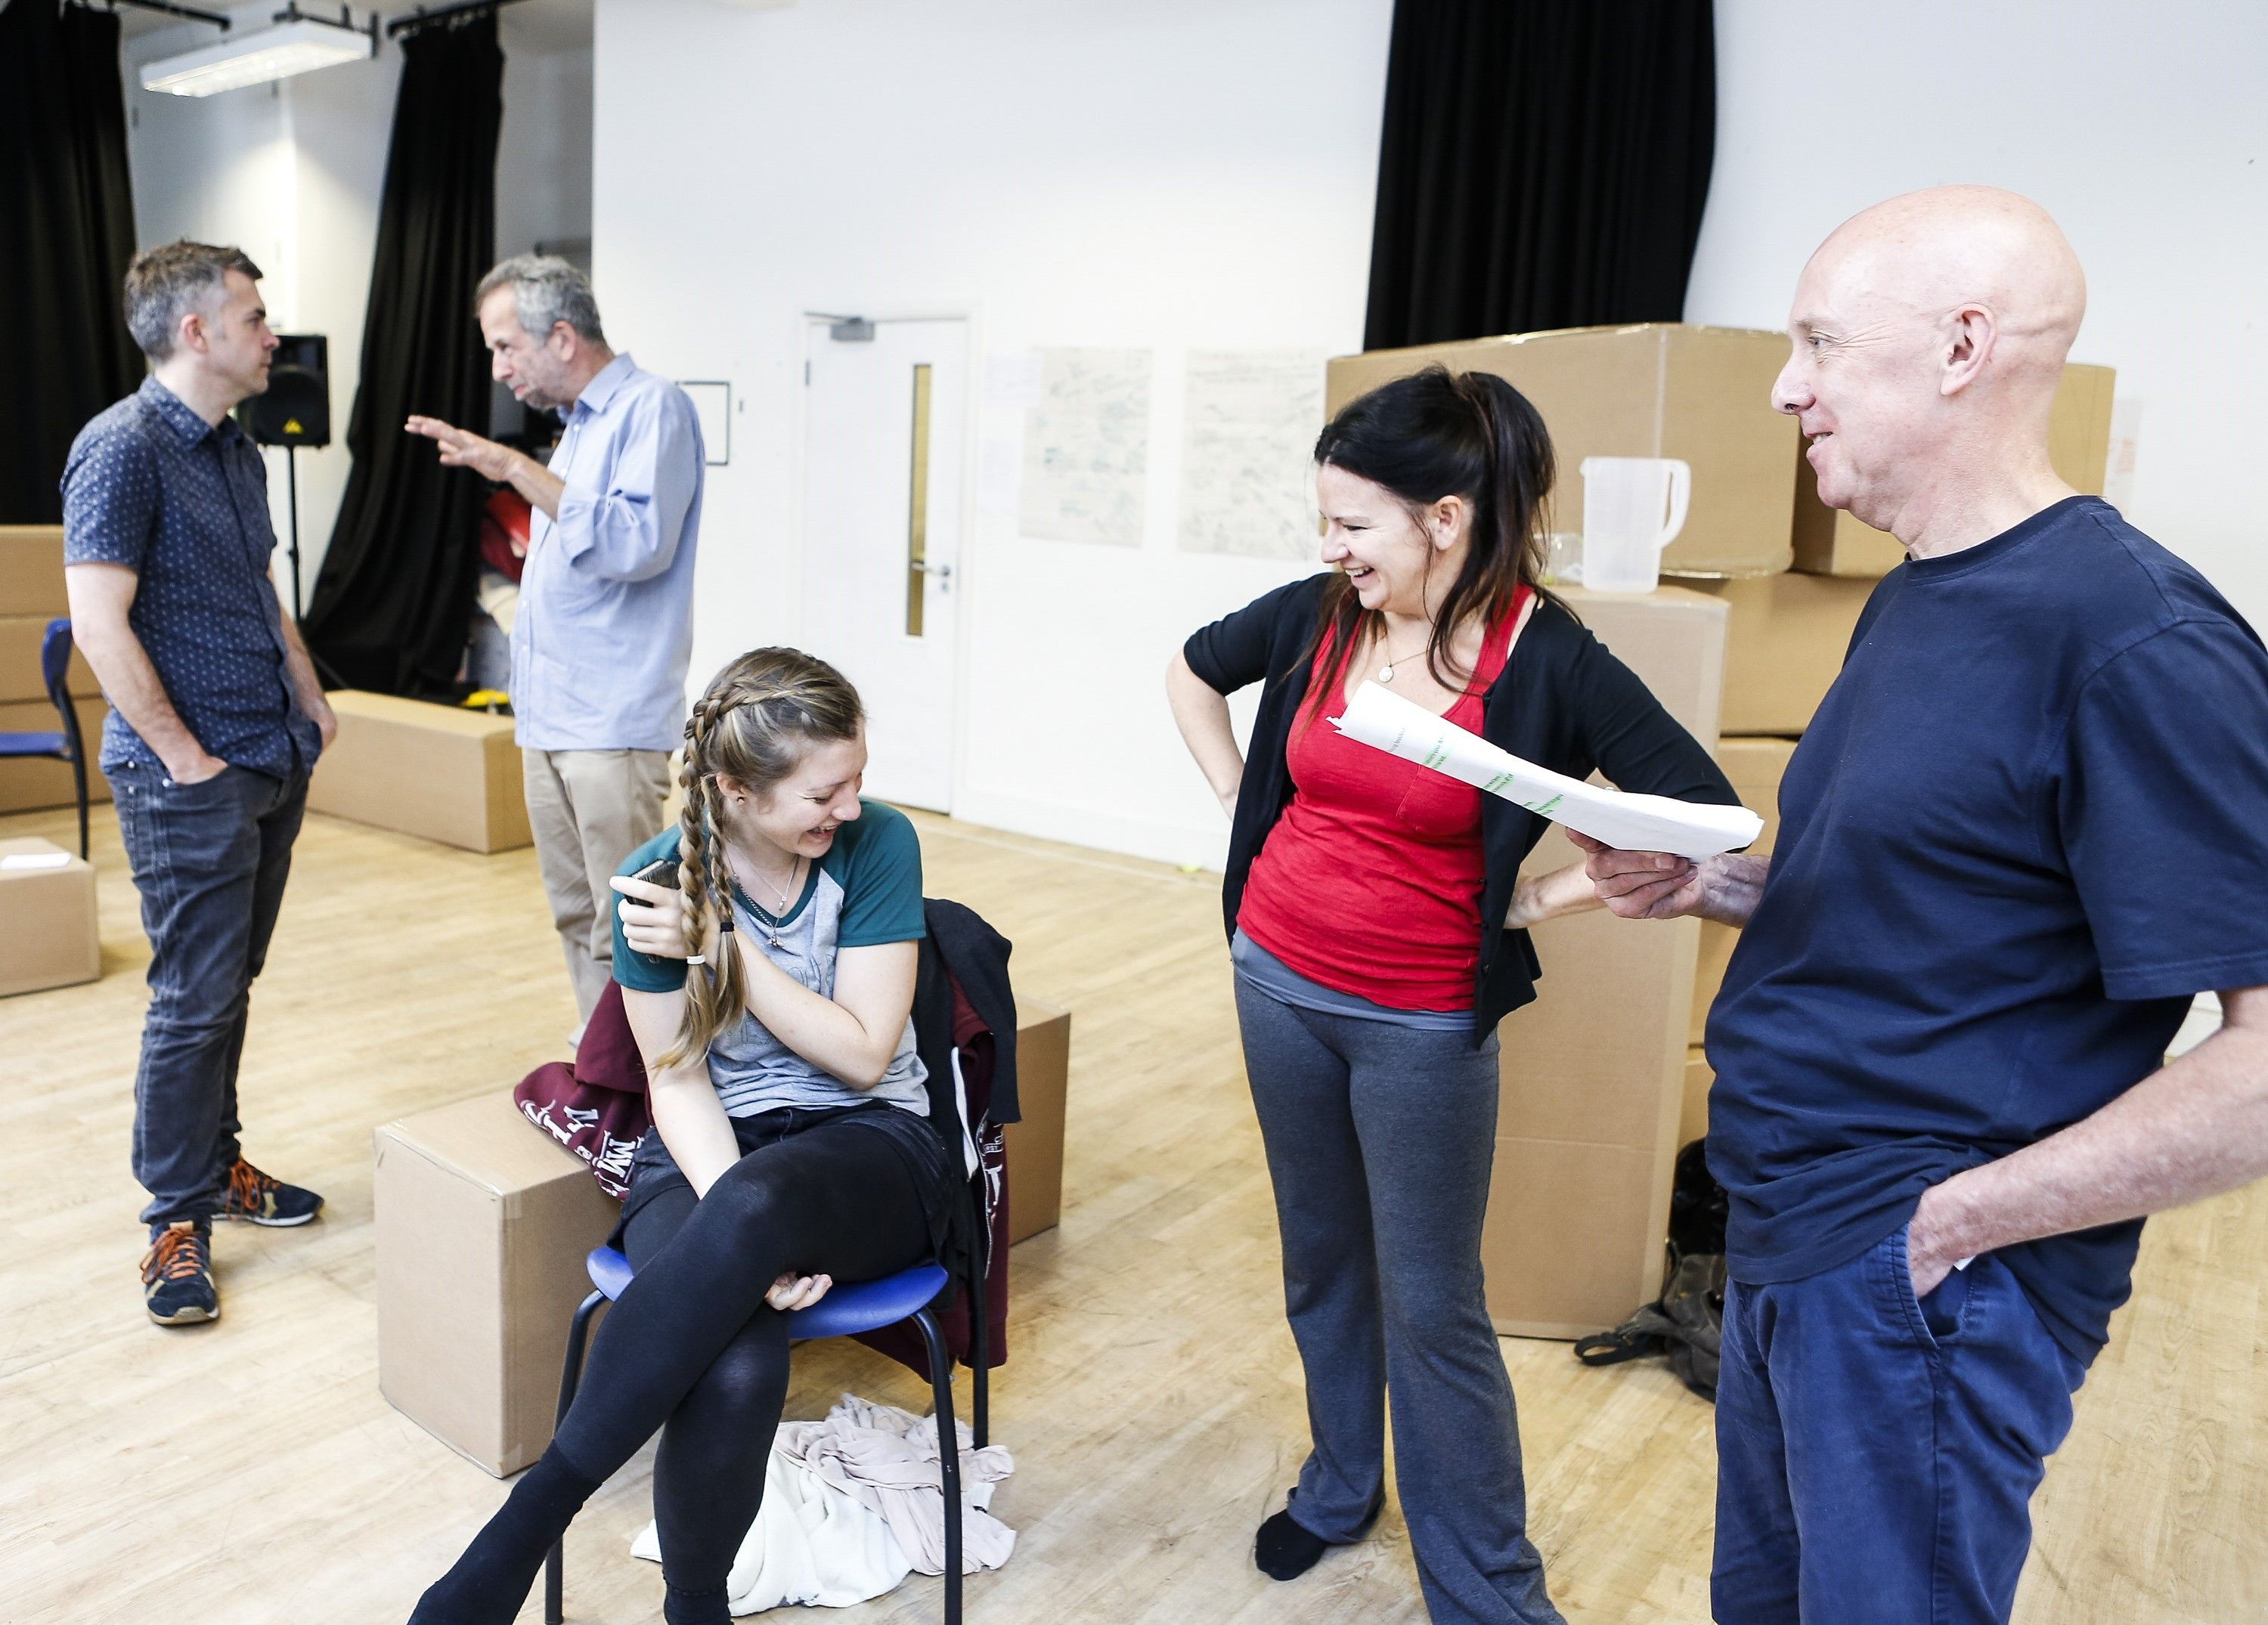 Adrian Jackson, Hayley Wareham, Cathy Owen and Alex Jones rehearse for Cardboard Citizens' UK Tour of Cathy_Pamela Raith Photography